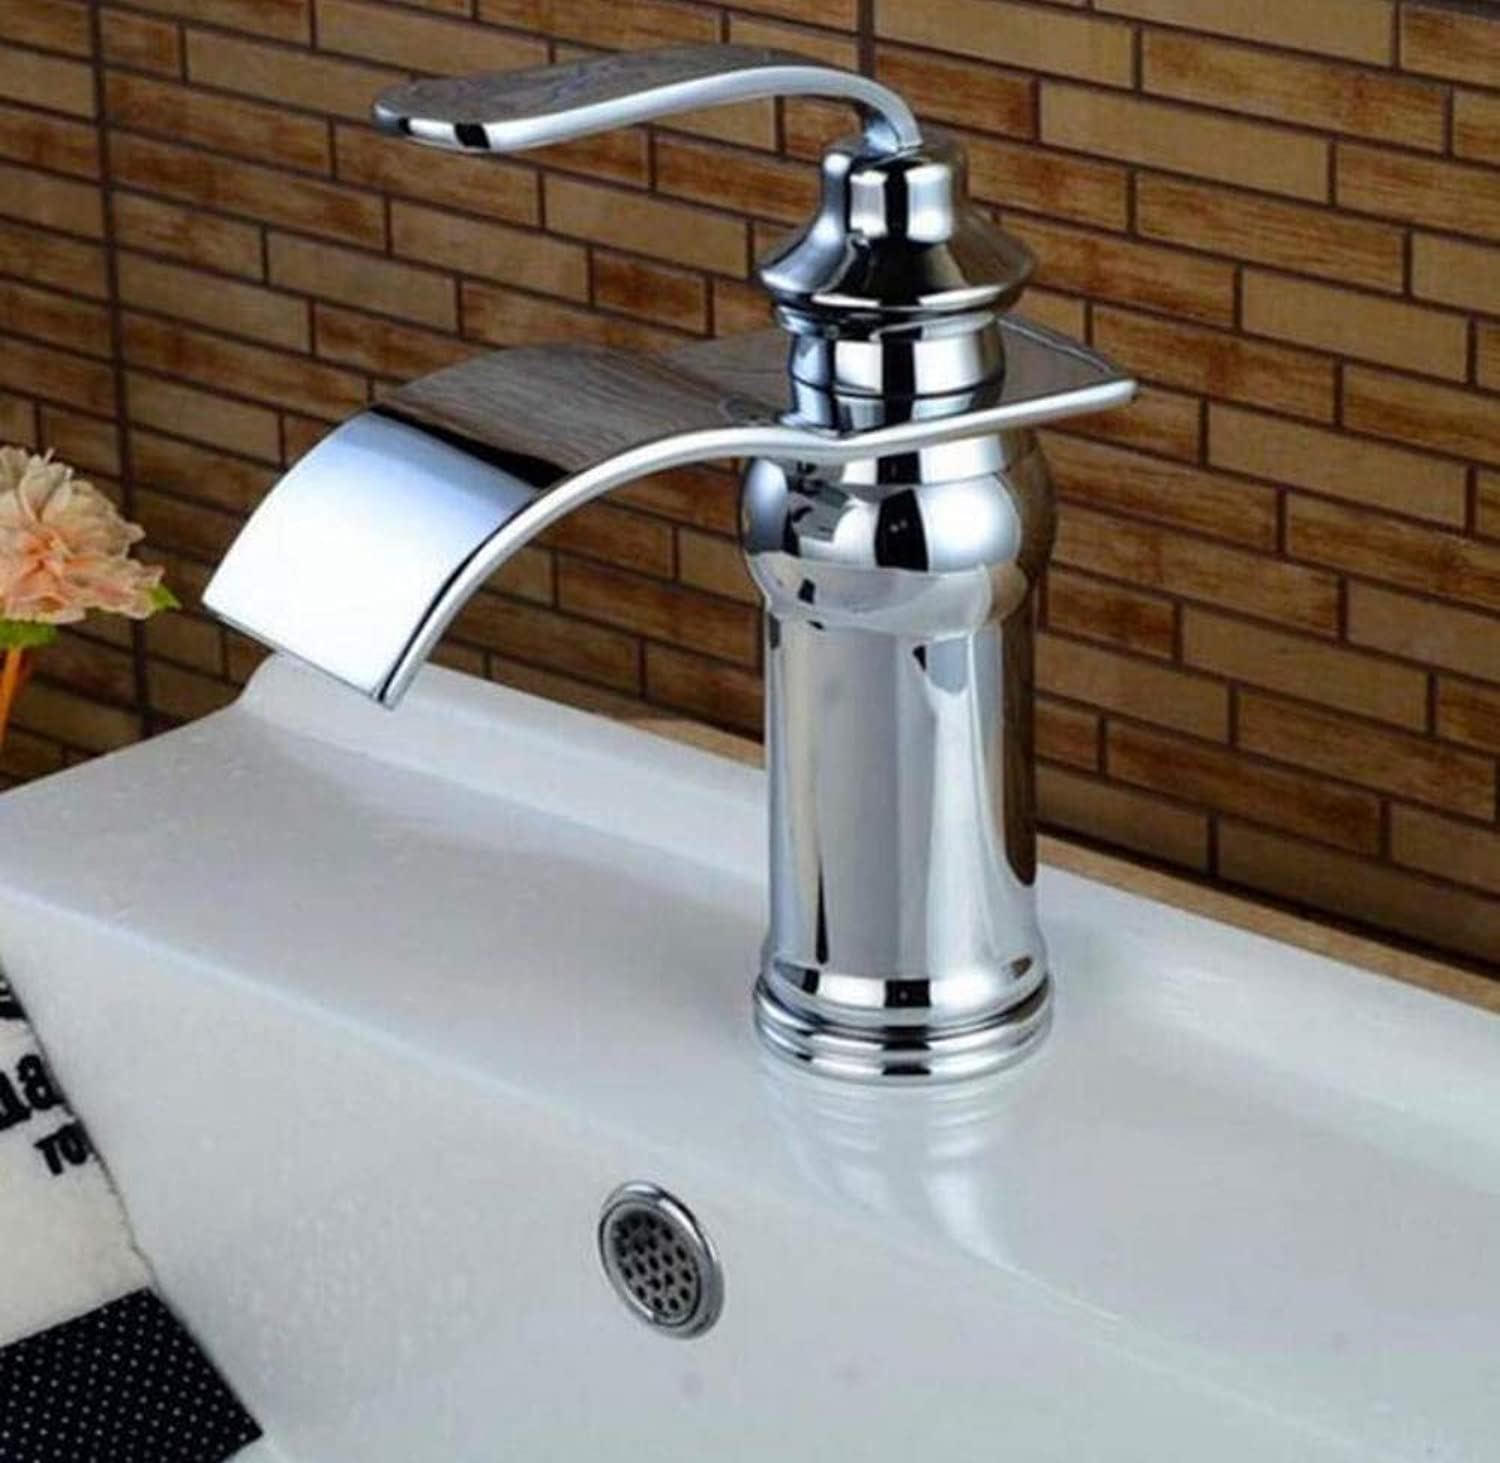 Brass Wall Faucet Chrome Brass Faucetfaucet Single Handle Single Hole Bathroom Basin Faucet Cold and Hot Waterfall Faucet